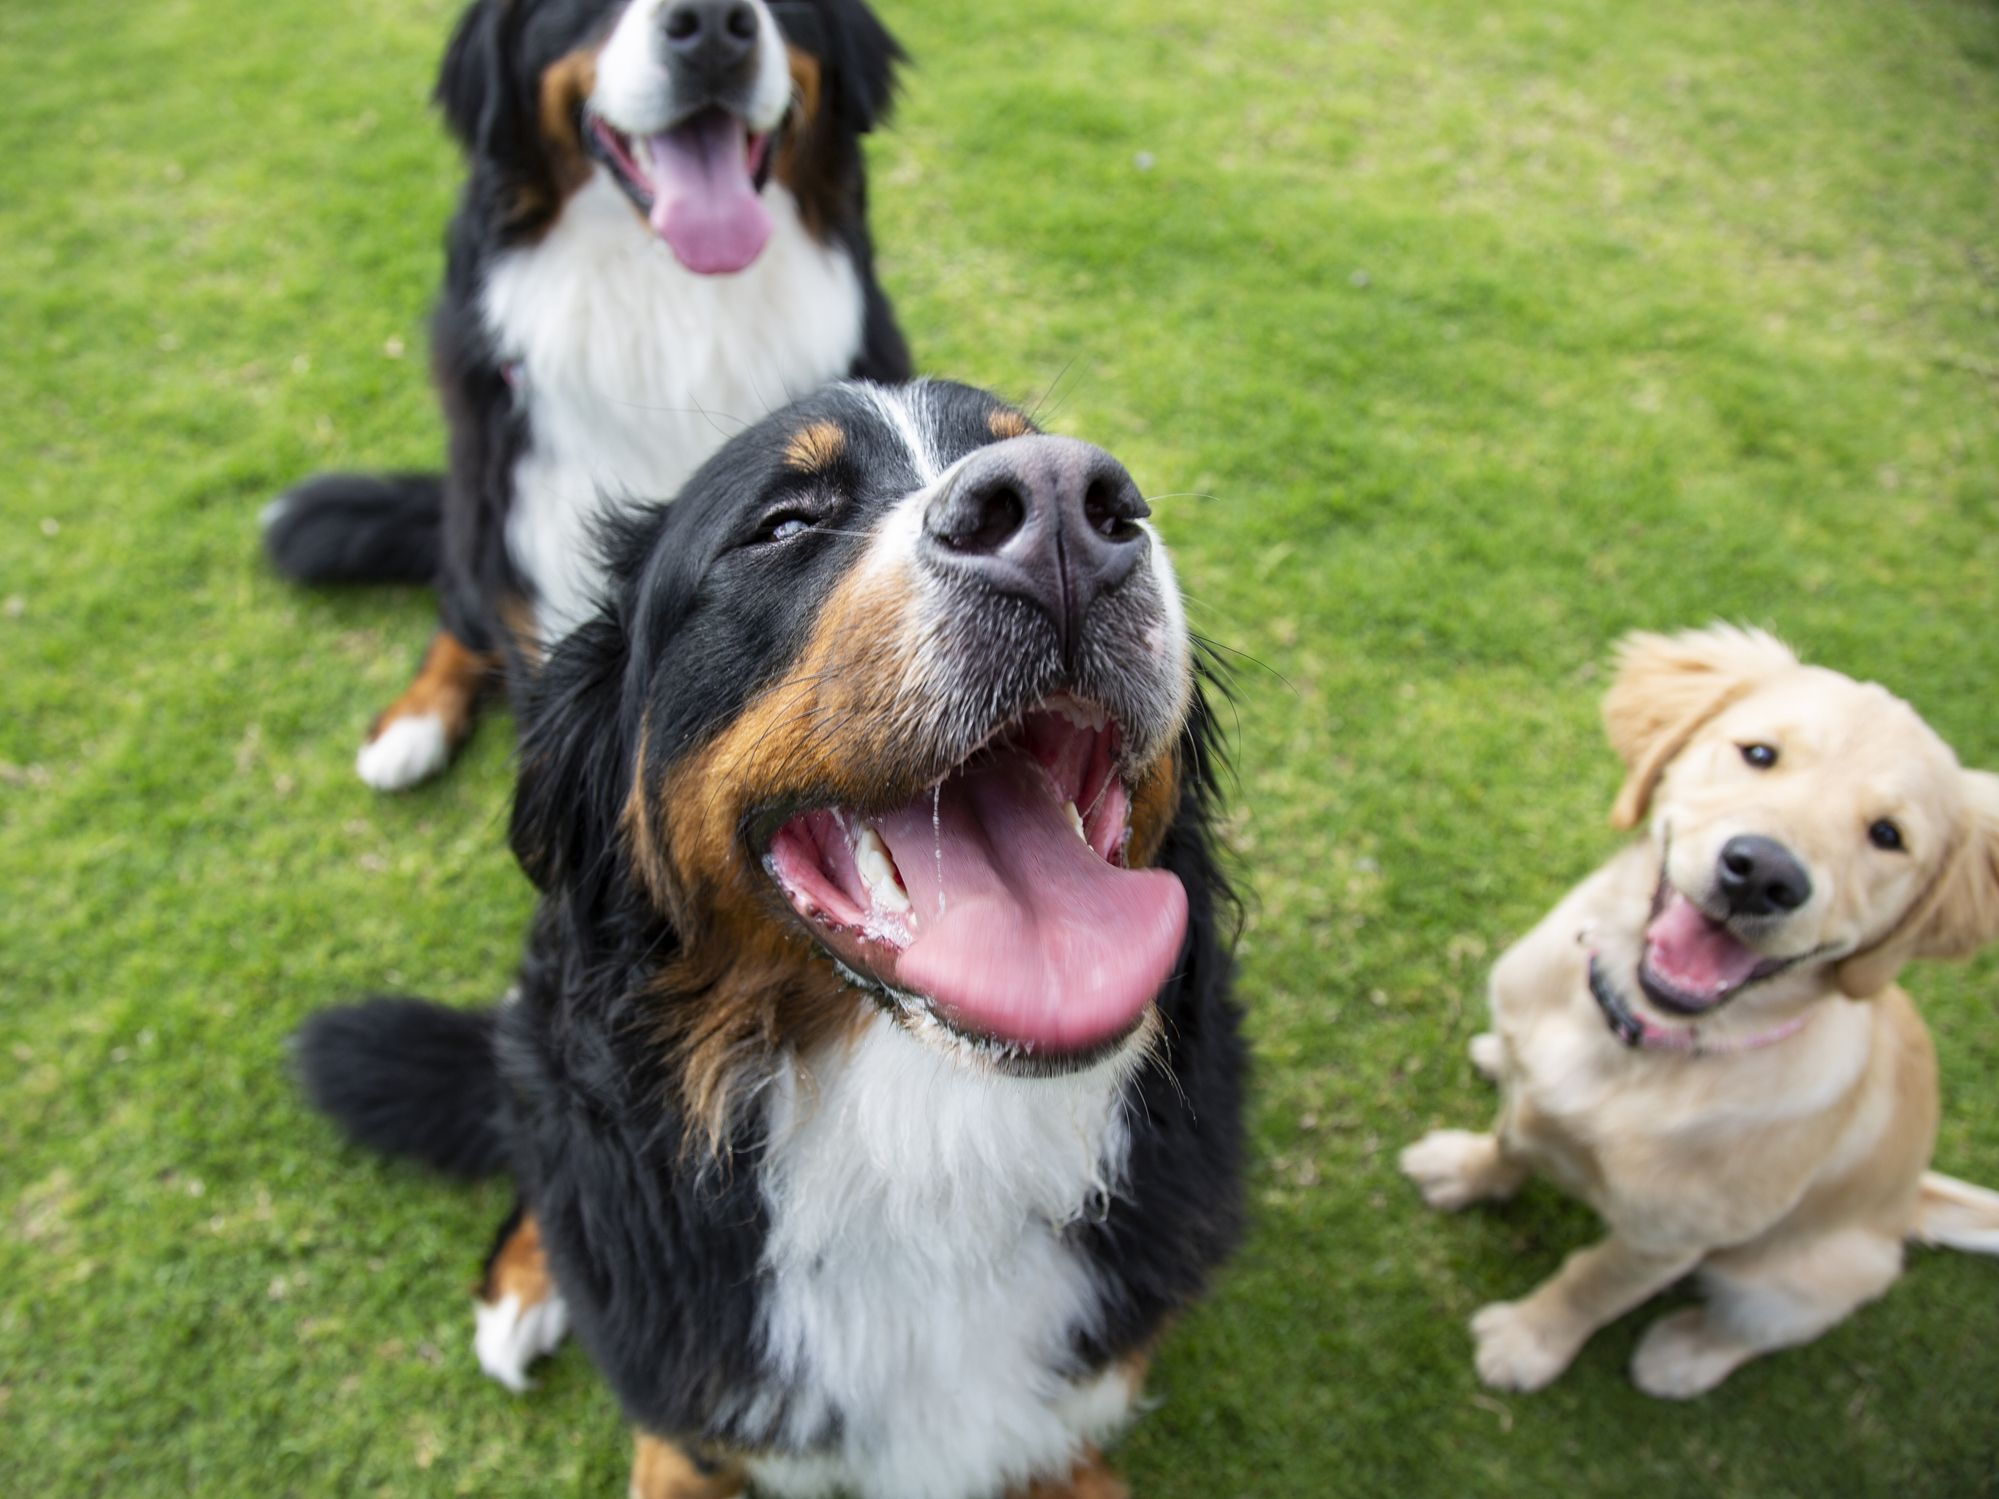 9 pet laws you probably didn't know existed